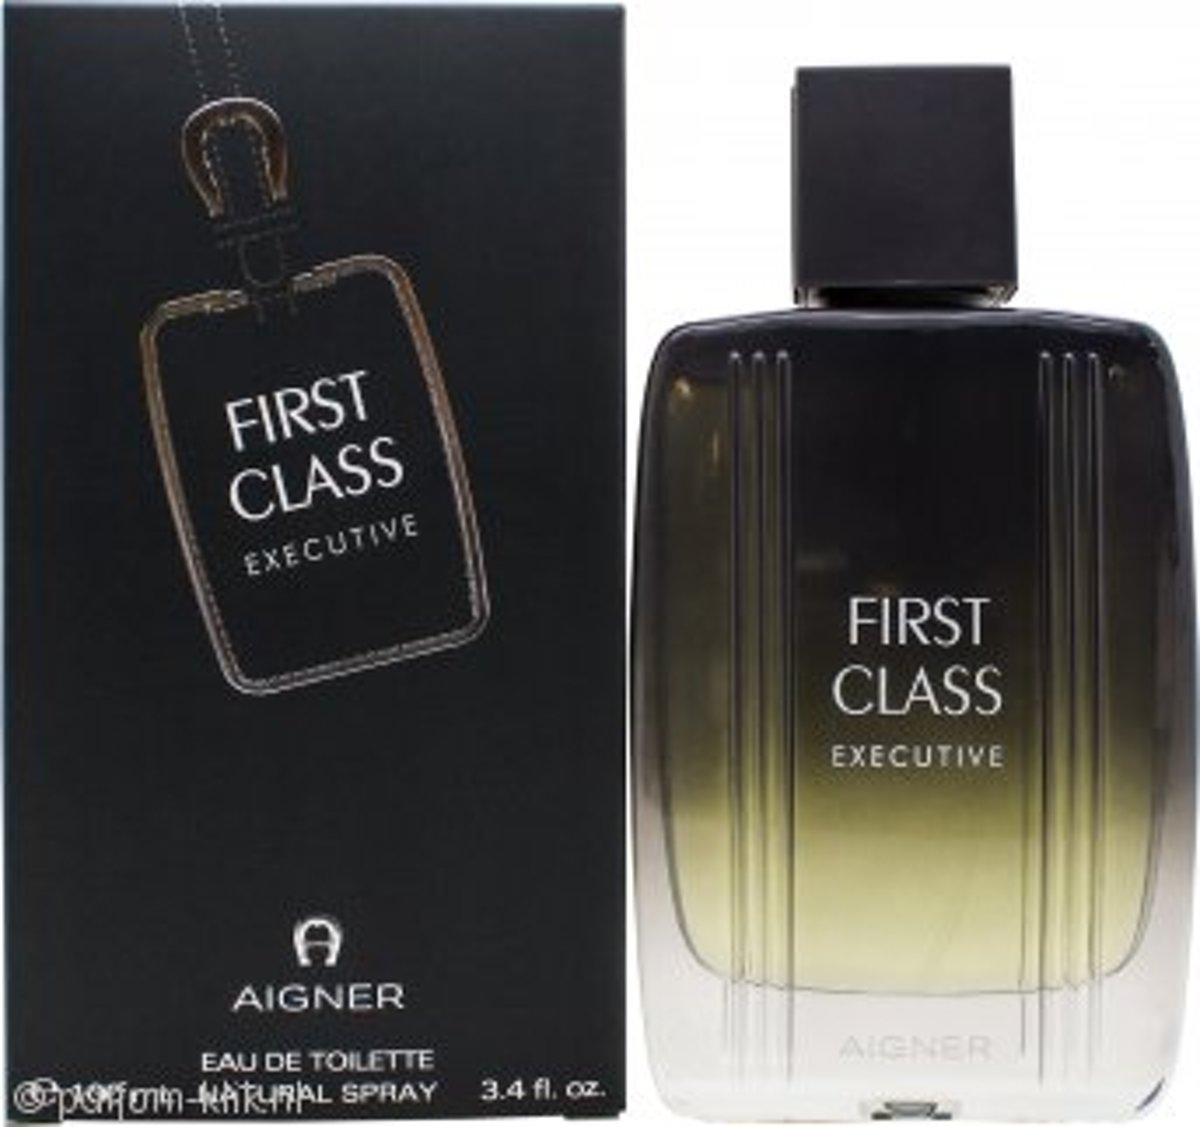 Aigner First Class Executive - EdT - 100 ml - Mannenparfum